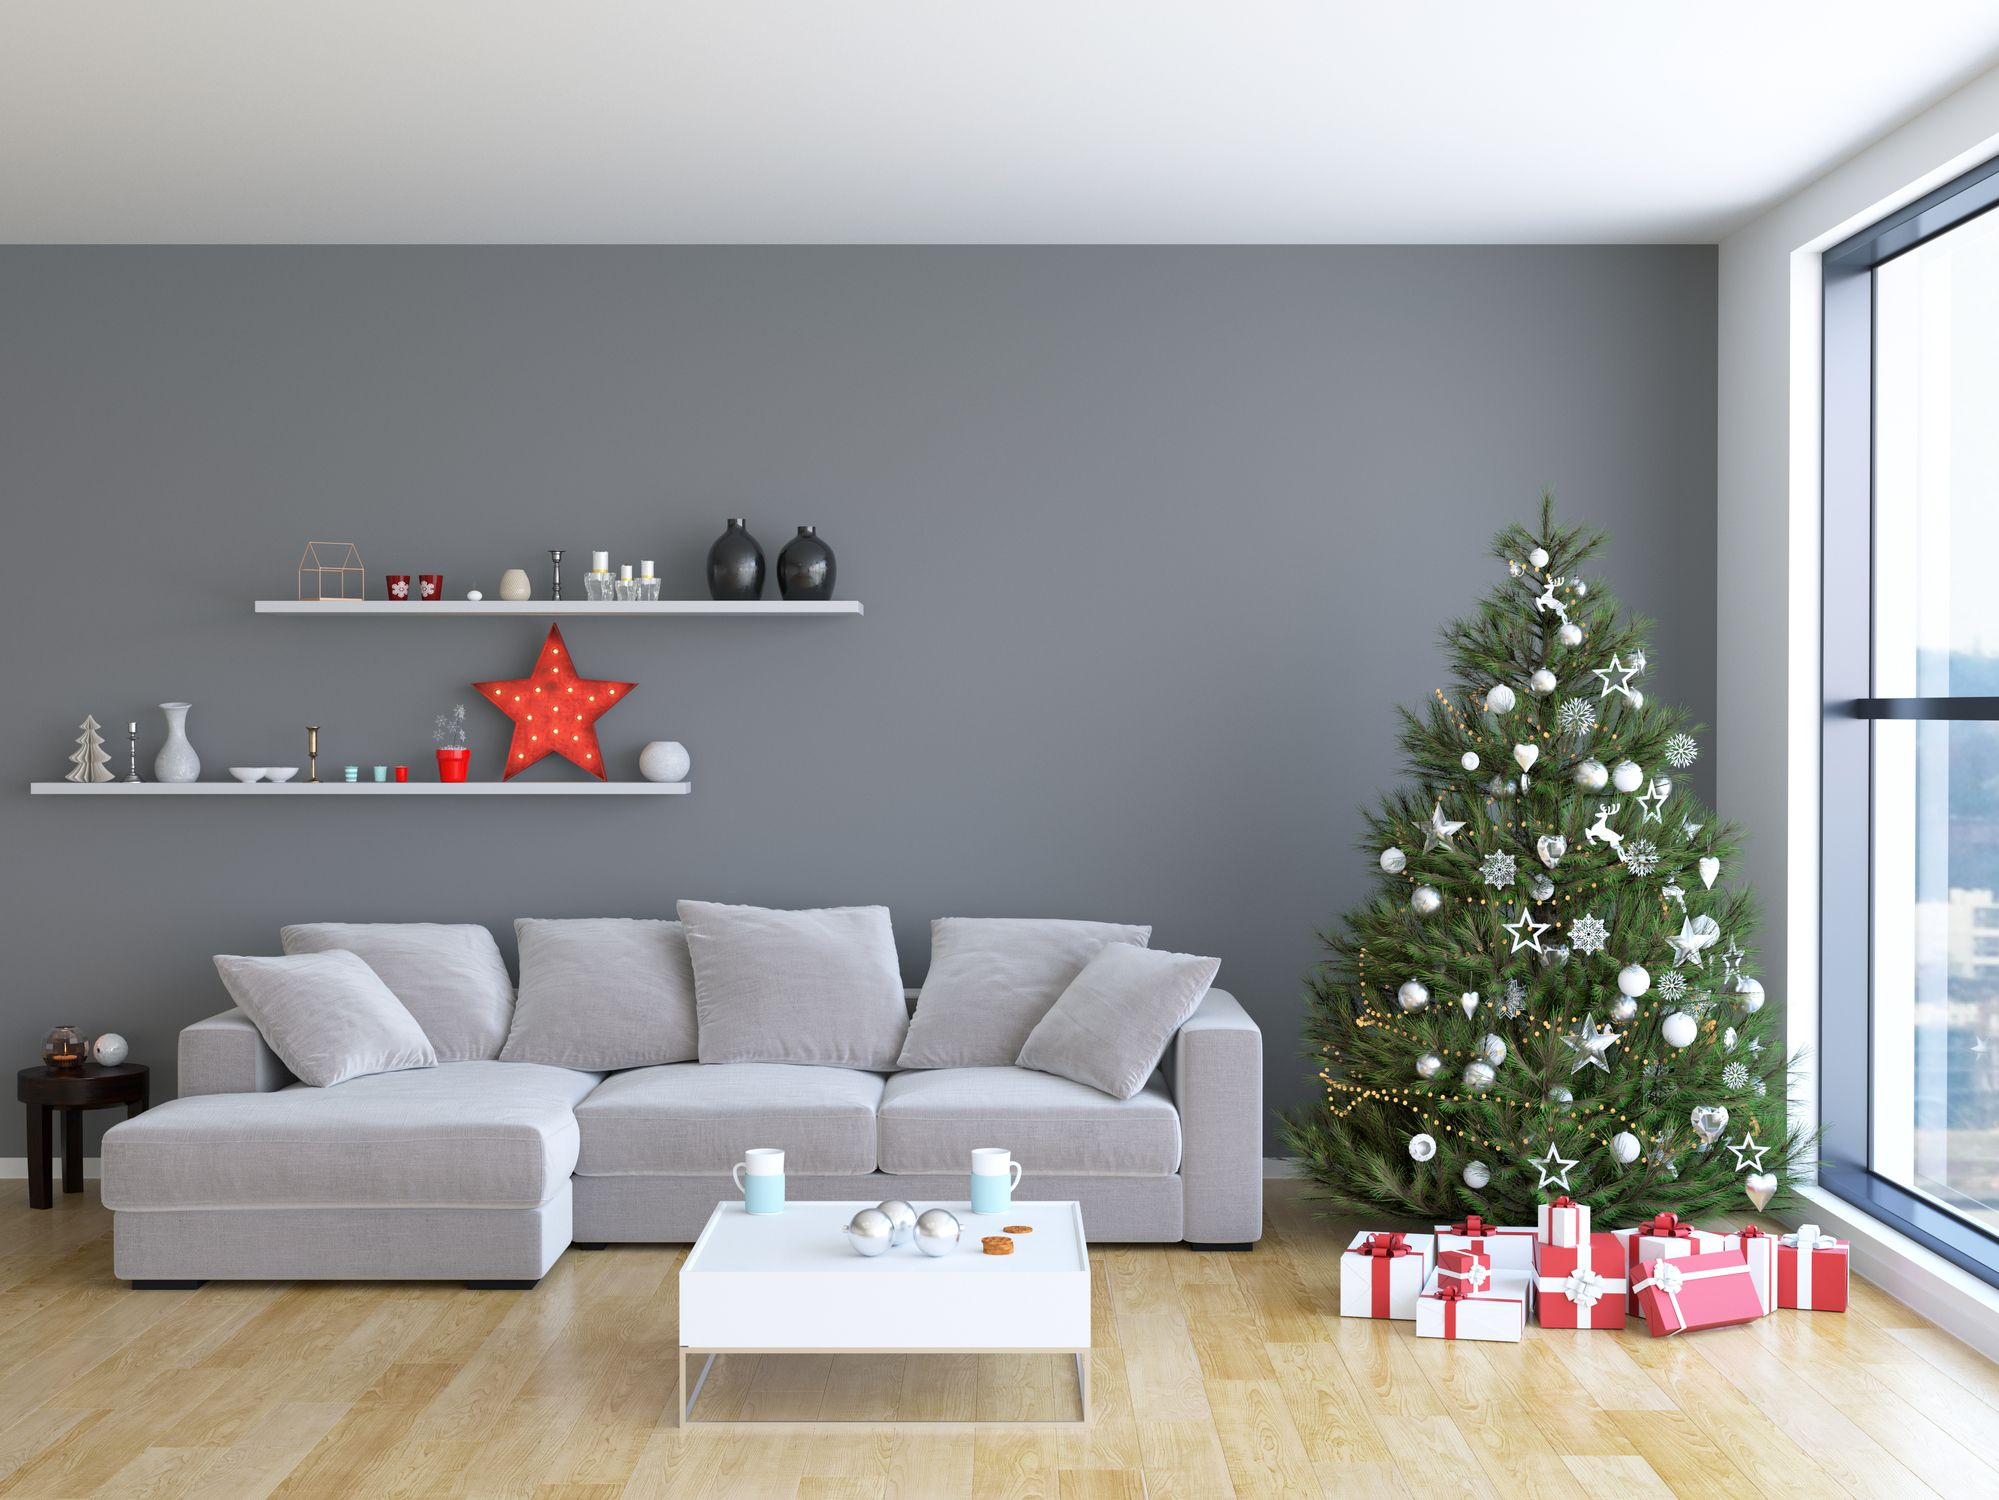 9 Fun Decoration Ideas to Dress Up Your Walls This Christmas